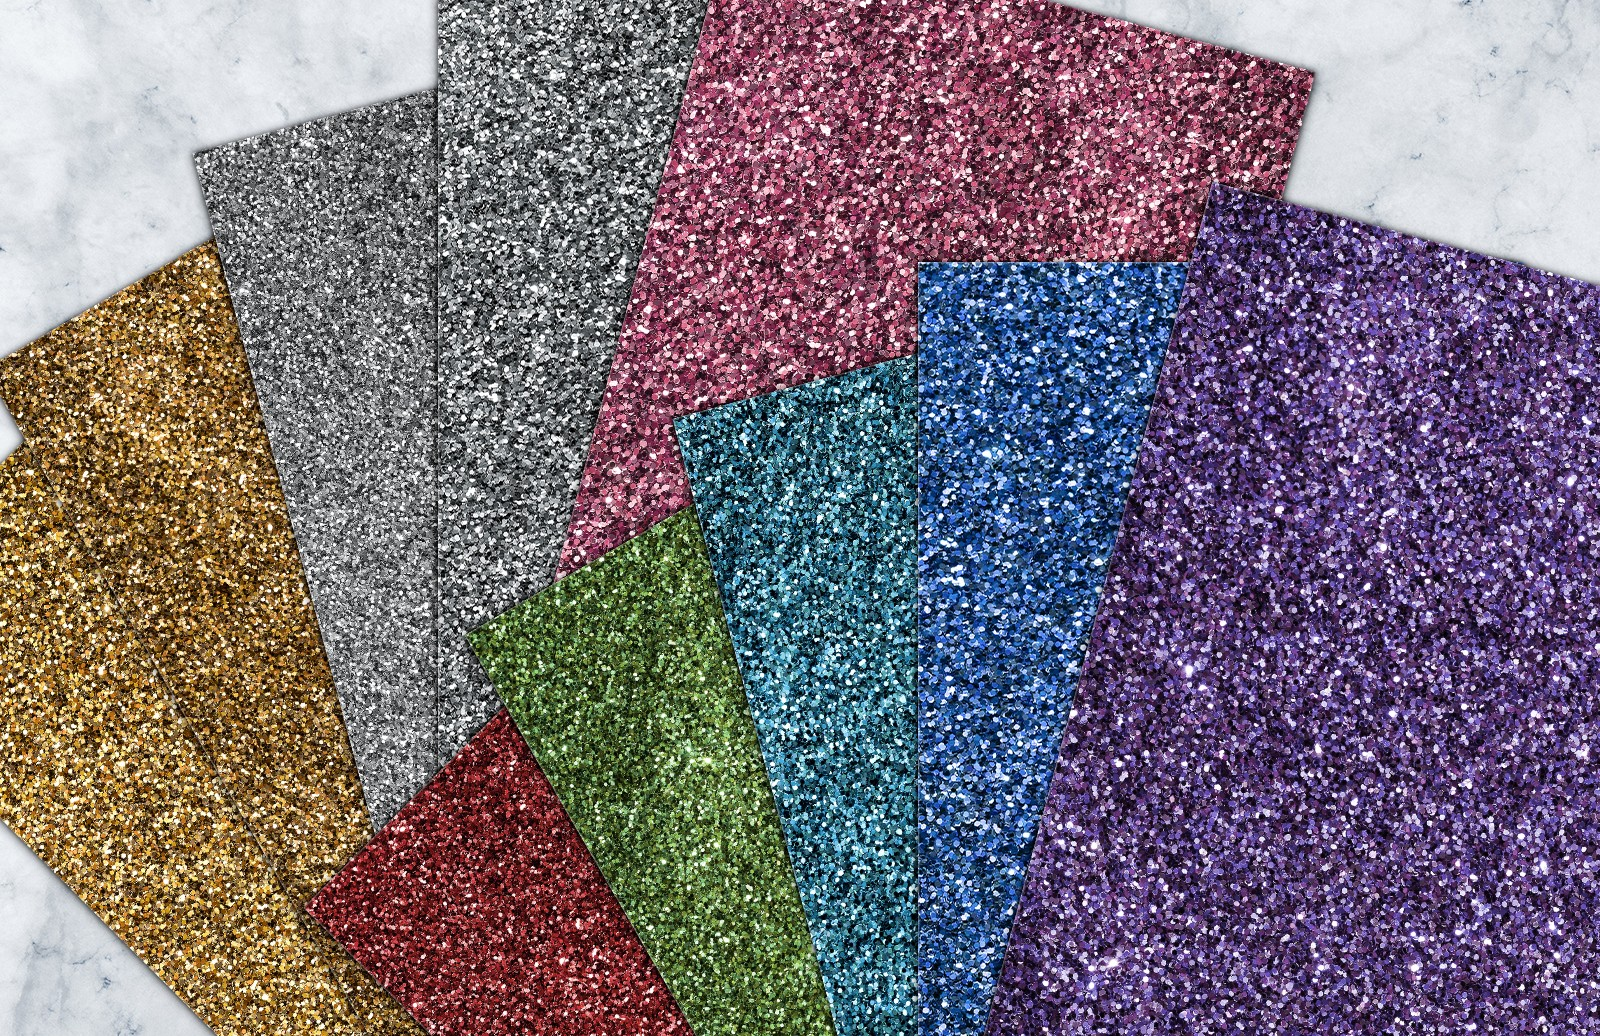 Real  Glitter  Textures  Preview 4